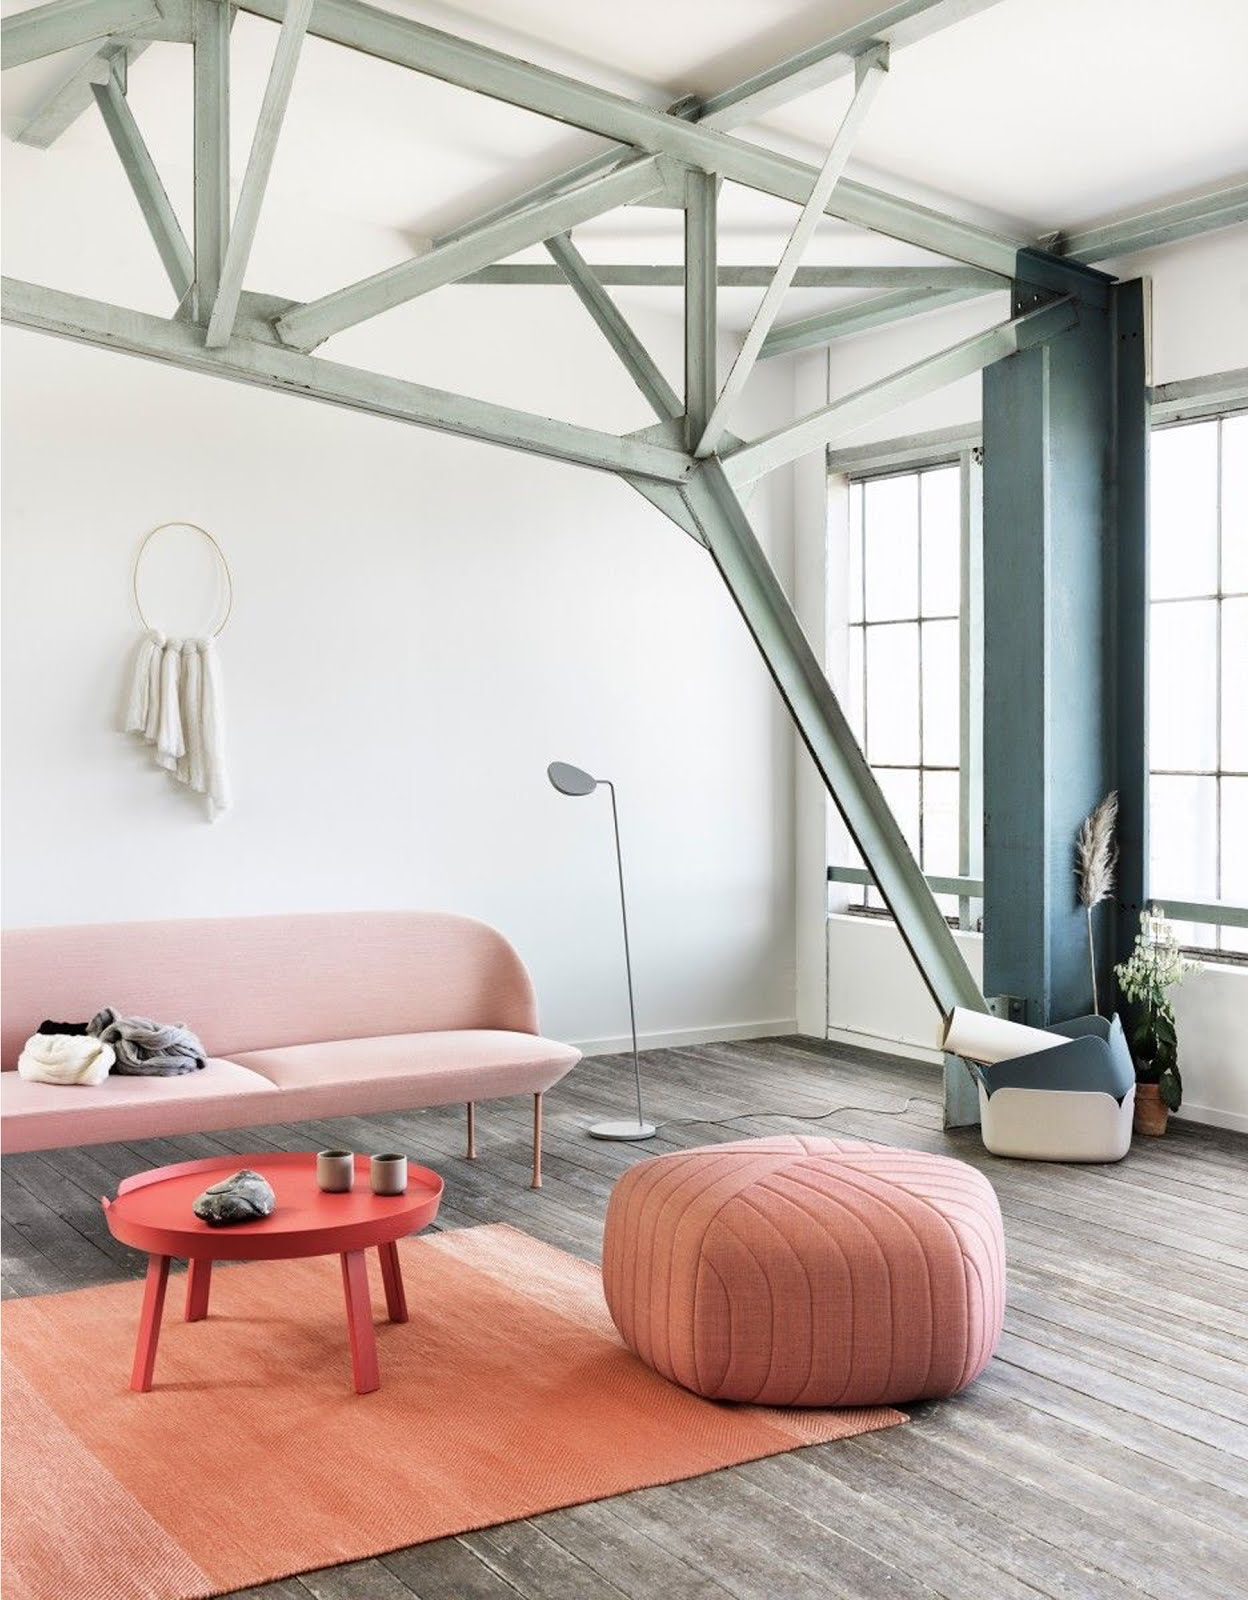 Scandinavian design, muuto, hay, wegner, wishbone chair, interior blogger, belgium, flinders